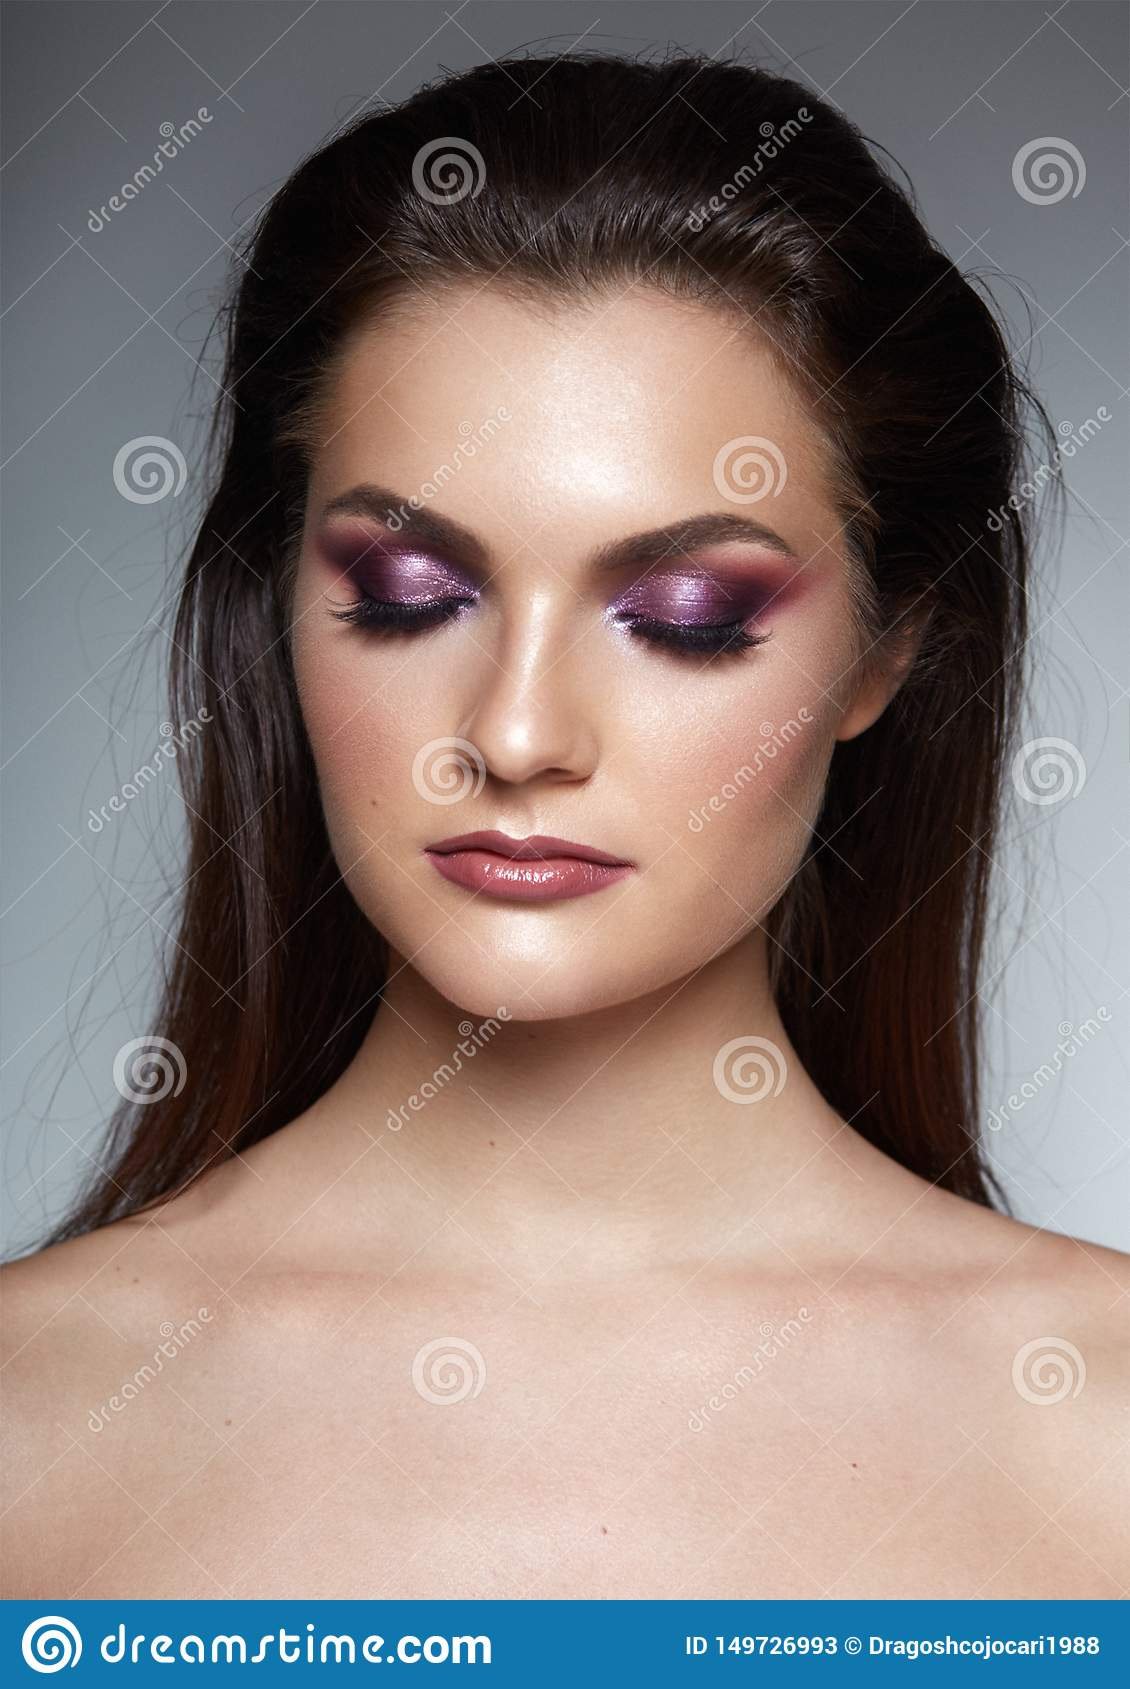 Graceful young woman with cosed eyes, poses confident with hairstule and perfect make up, isolated on a gray background.